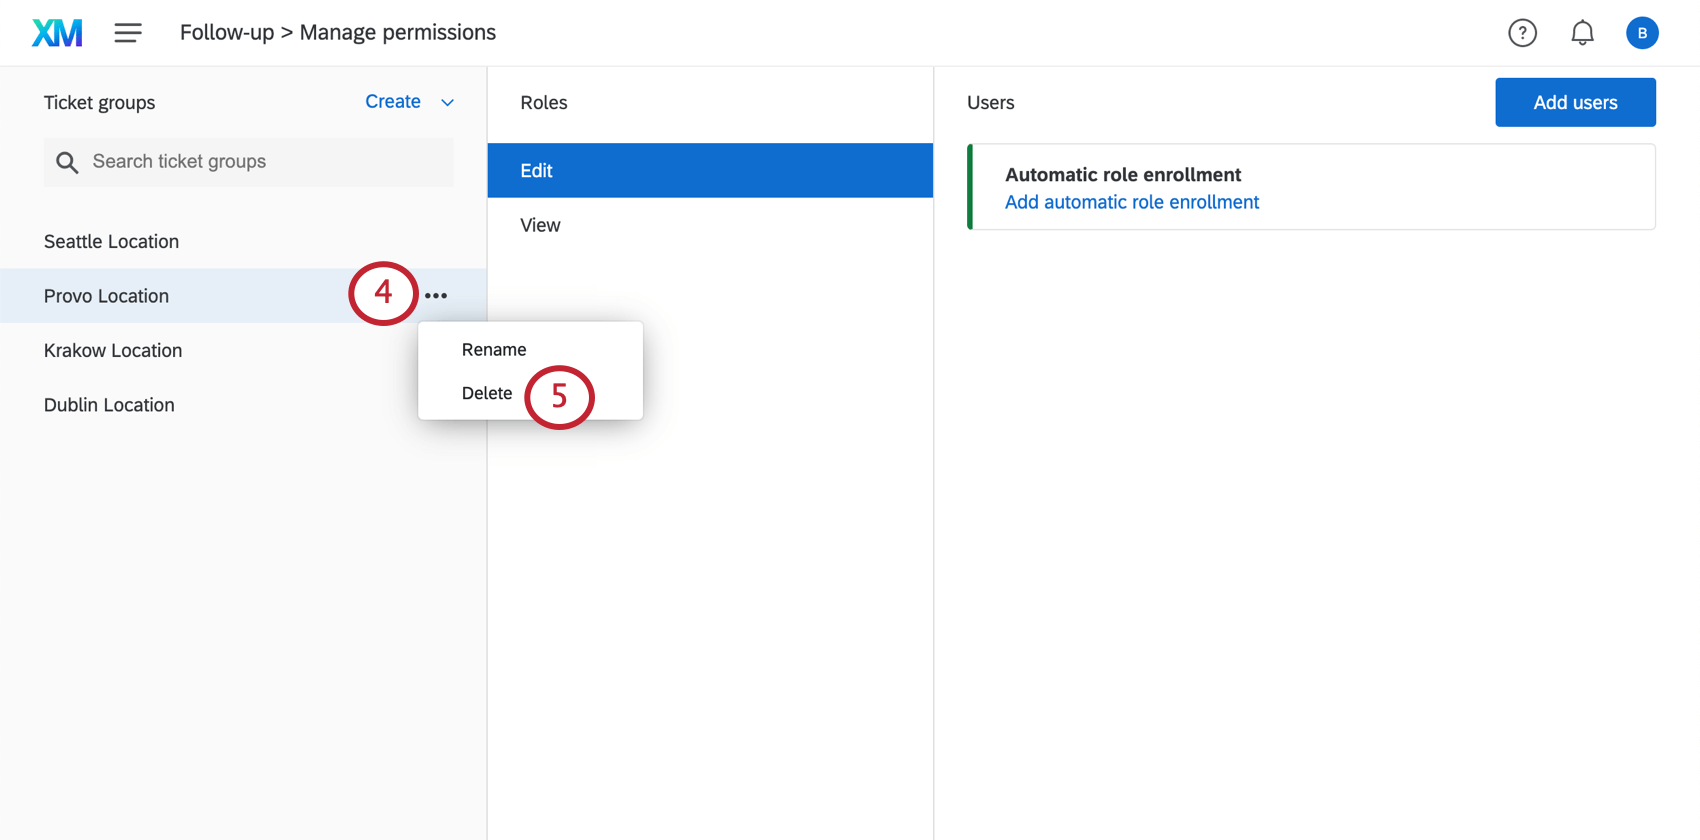 selecting the delete option for a group